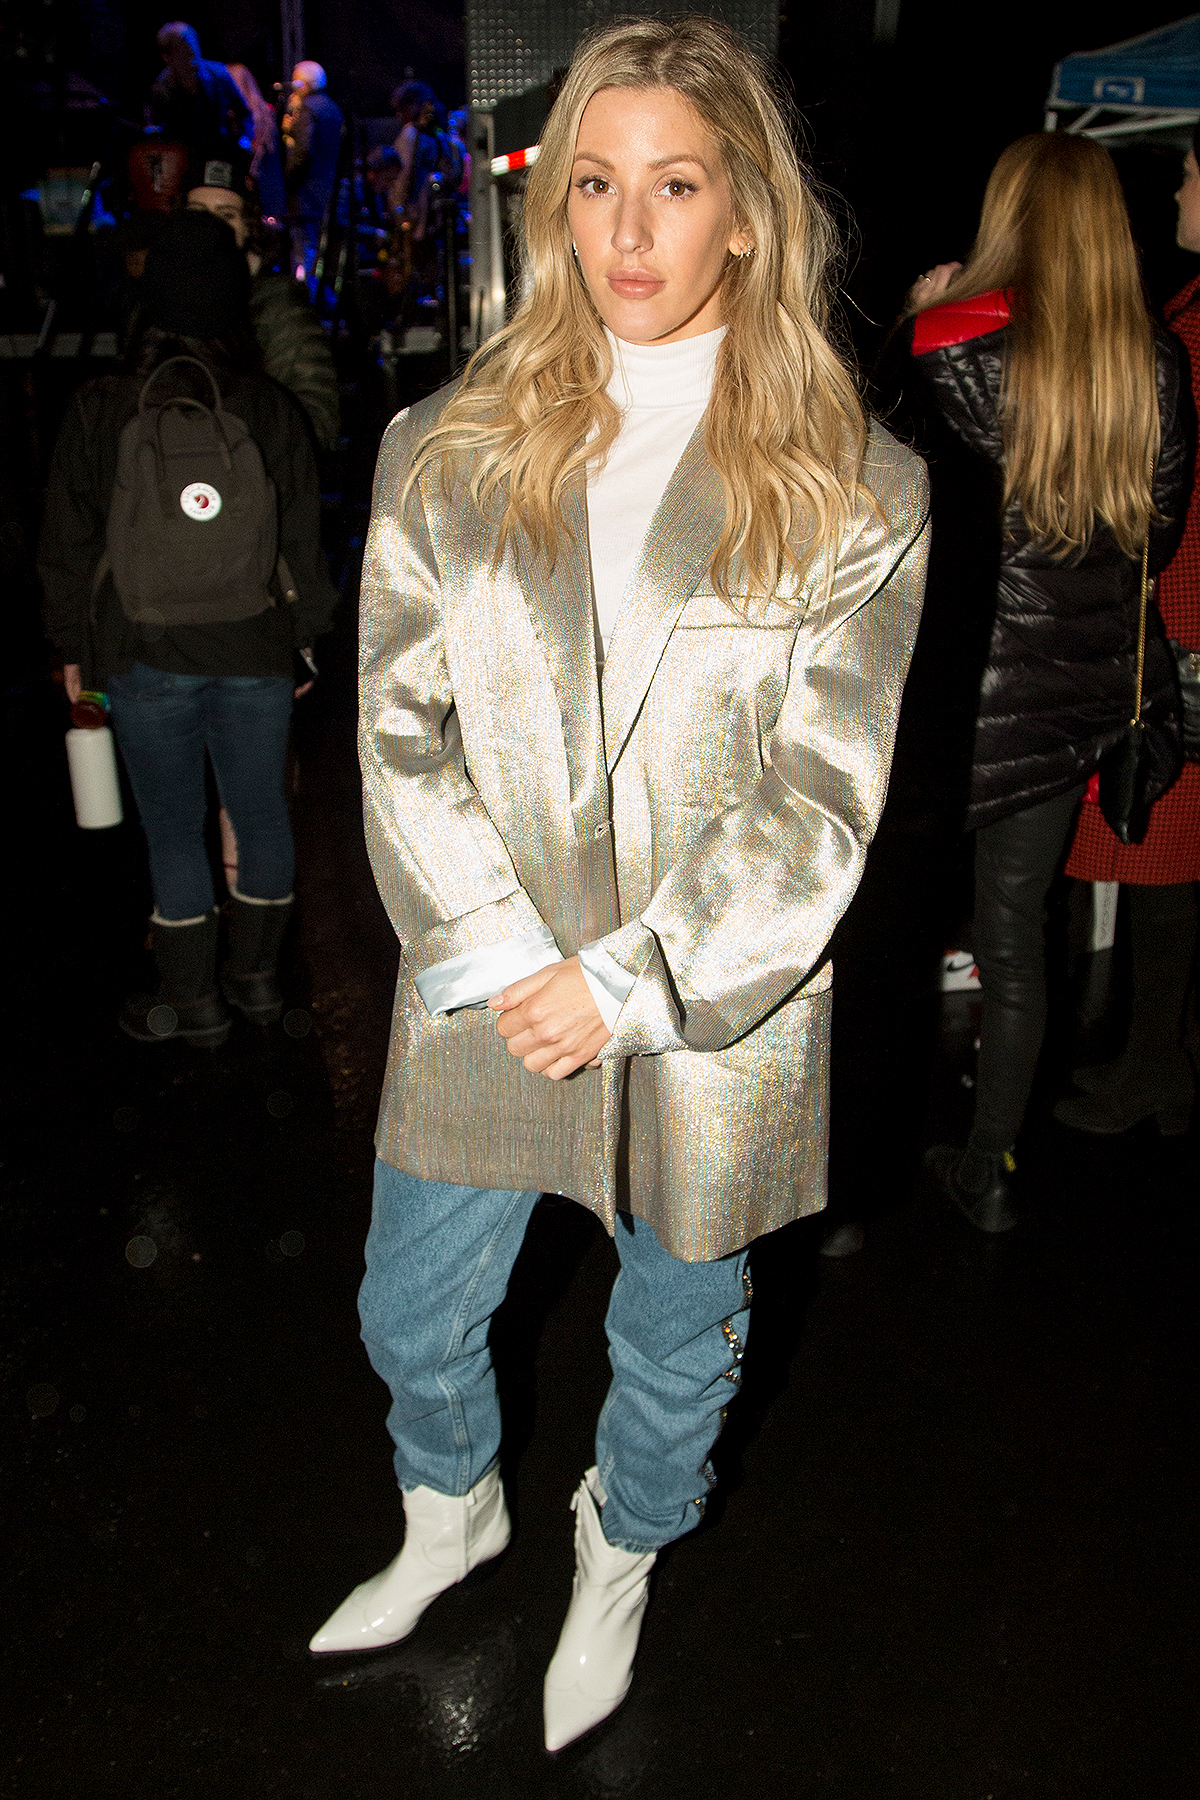 Ellie Goulding attends the World's Big Sleep Out At The Rose Bowl For Homelessness on December 07, 2019